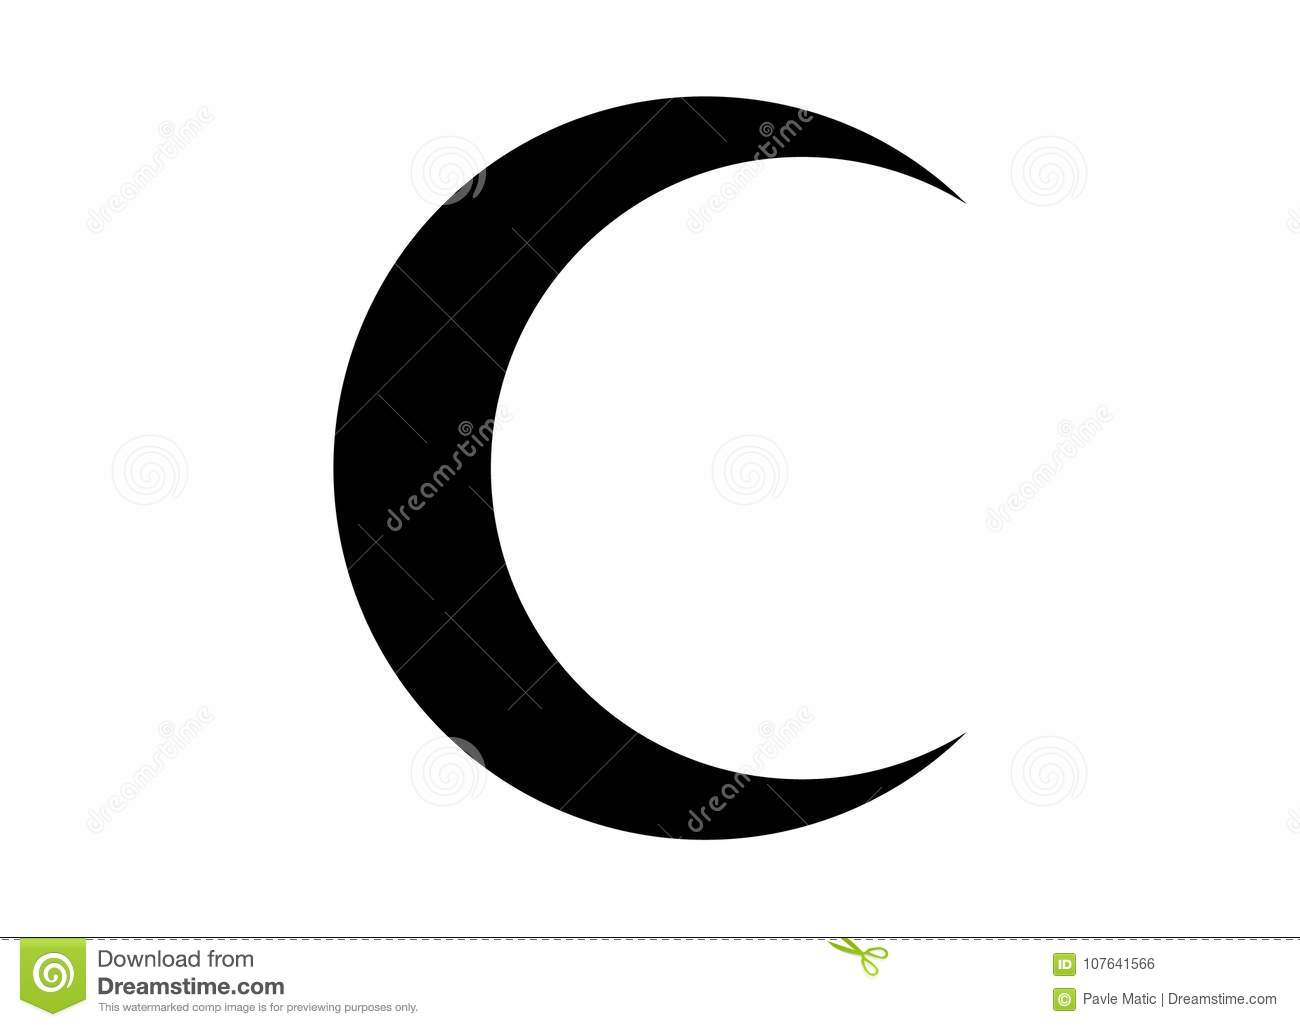 crescent moon symbol on iphone crescent moon symbol iphone choice image meaning of text 16845